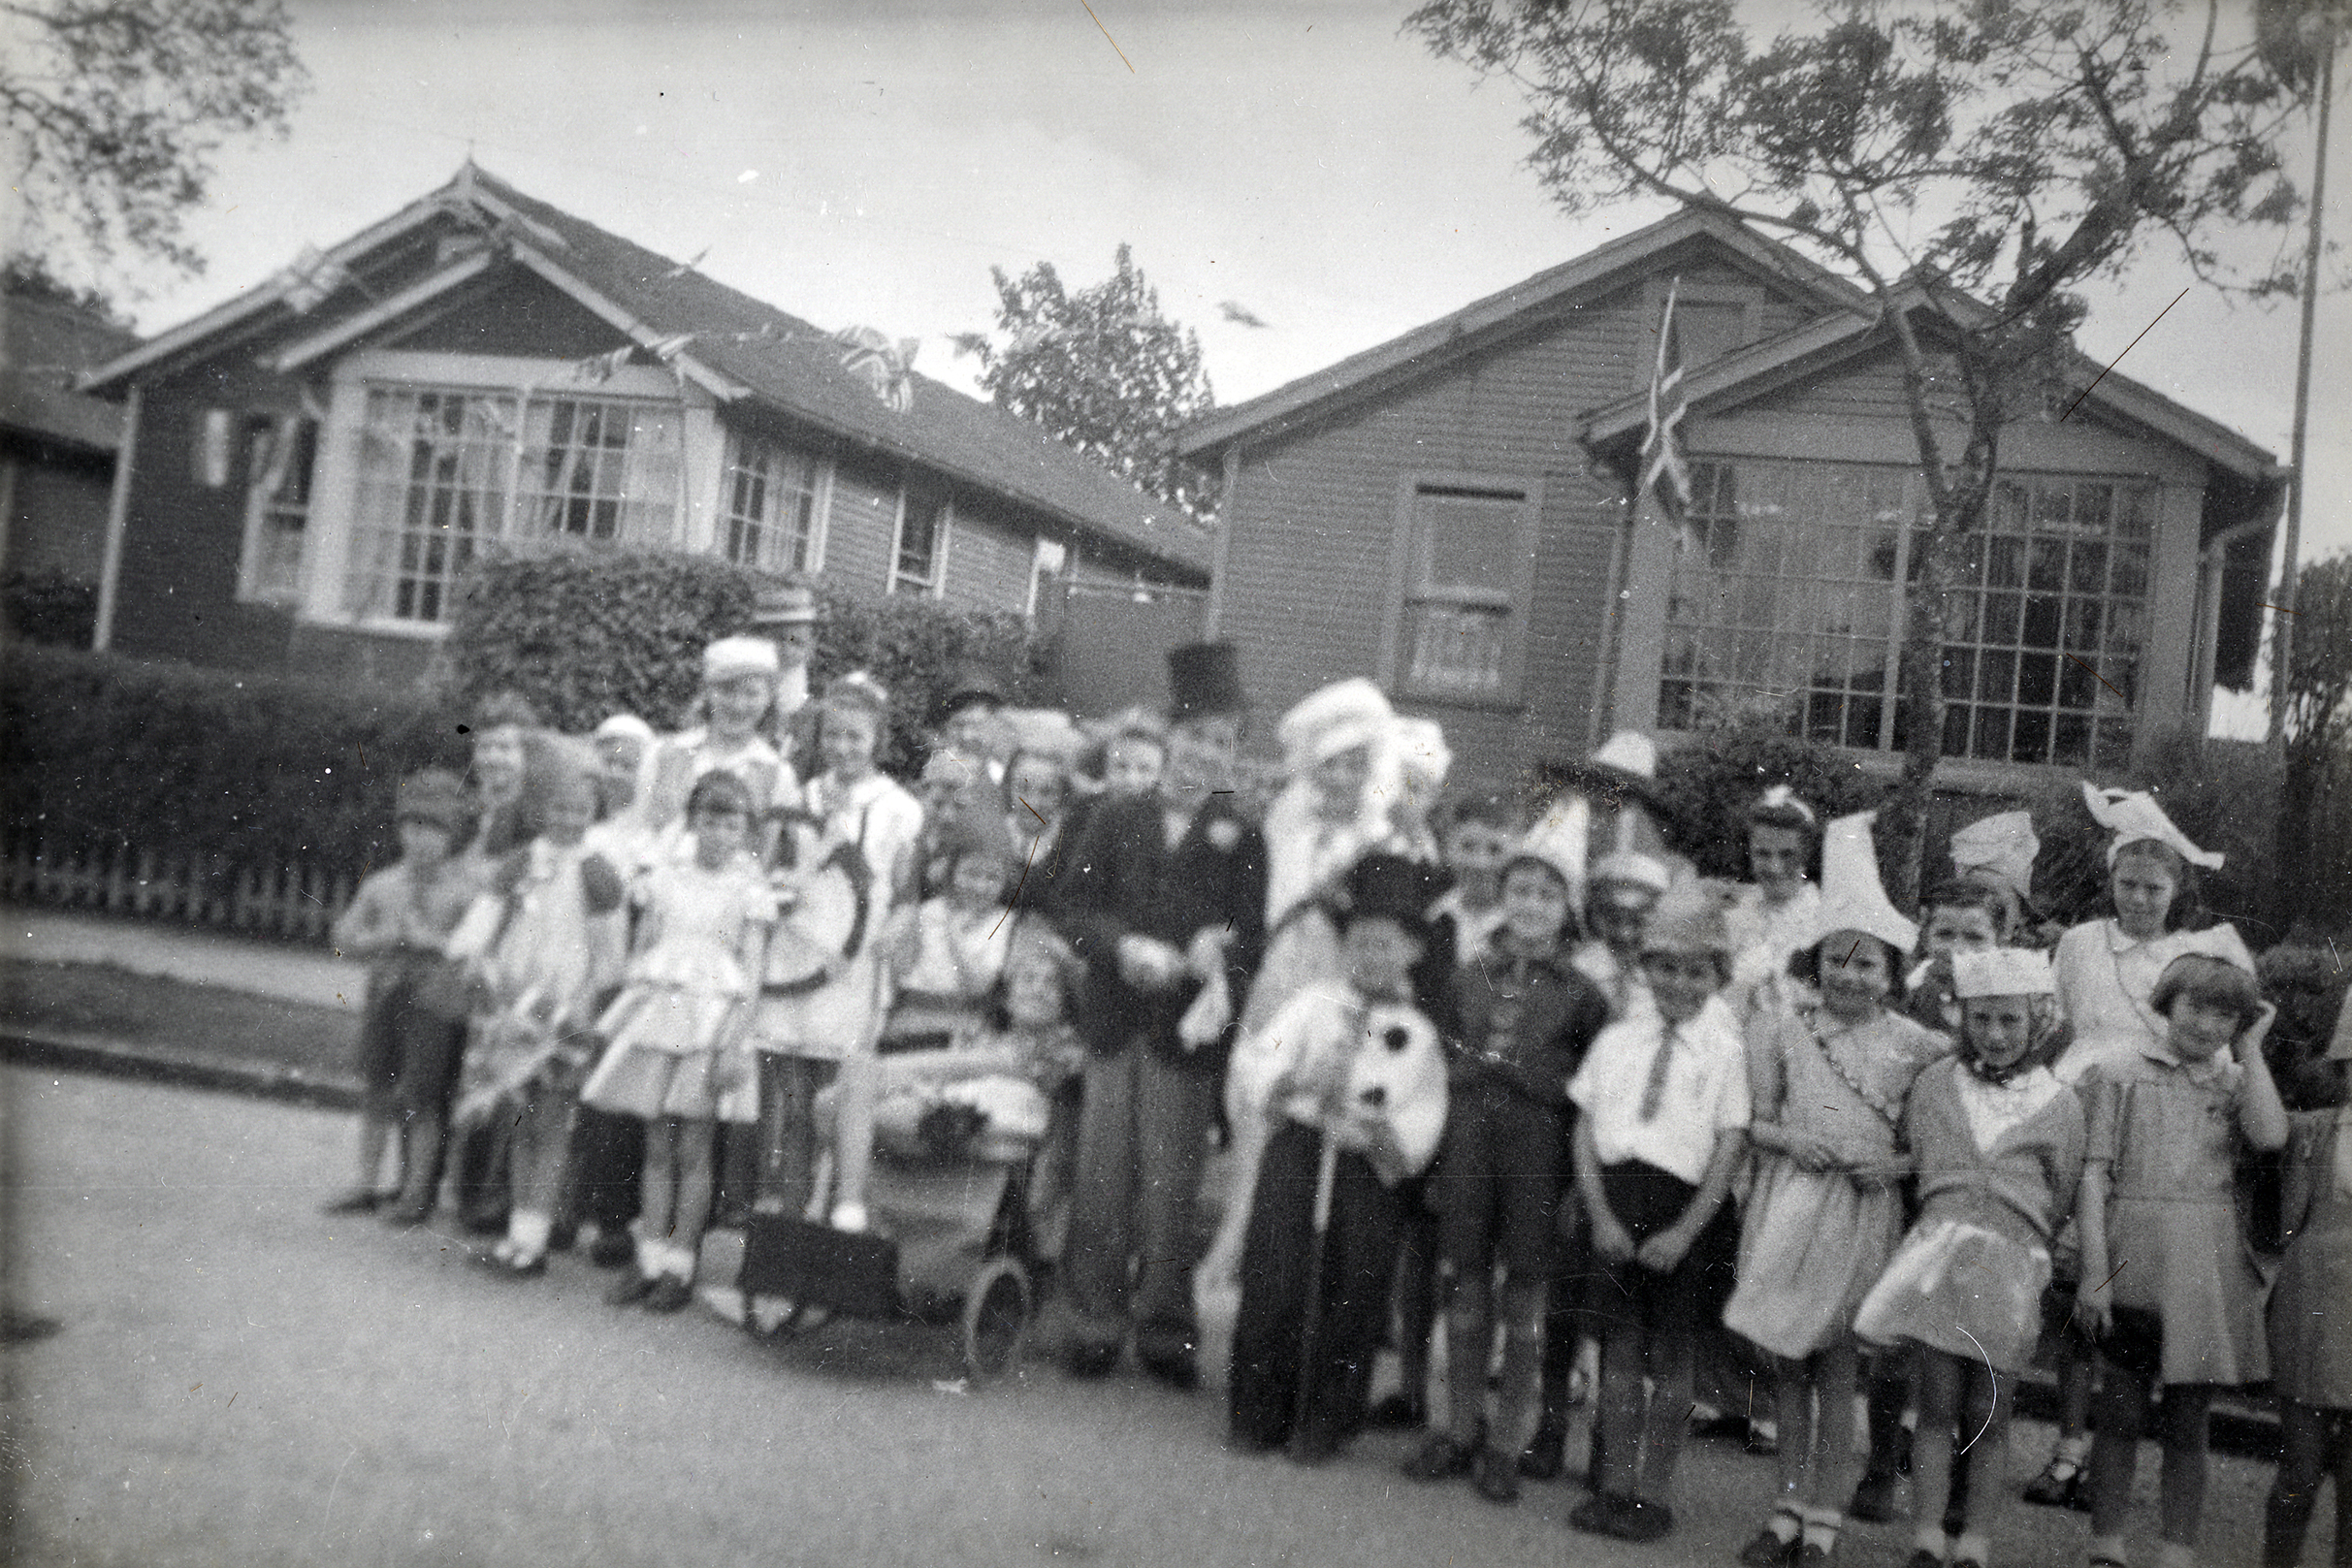 Street Party, 1920's